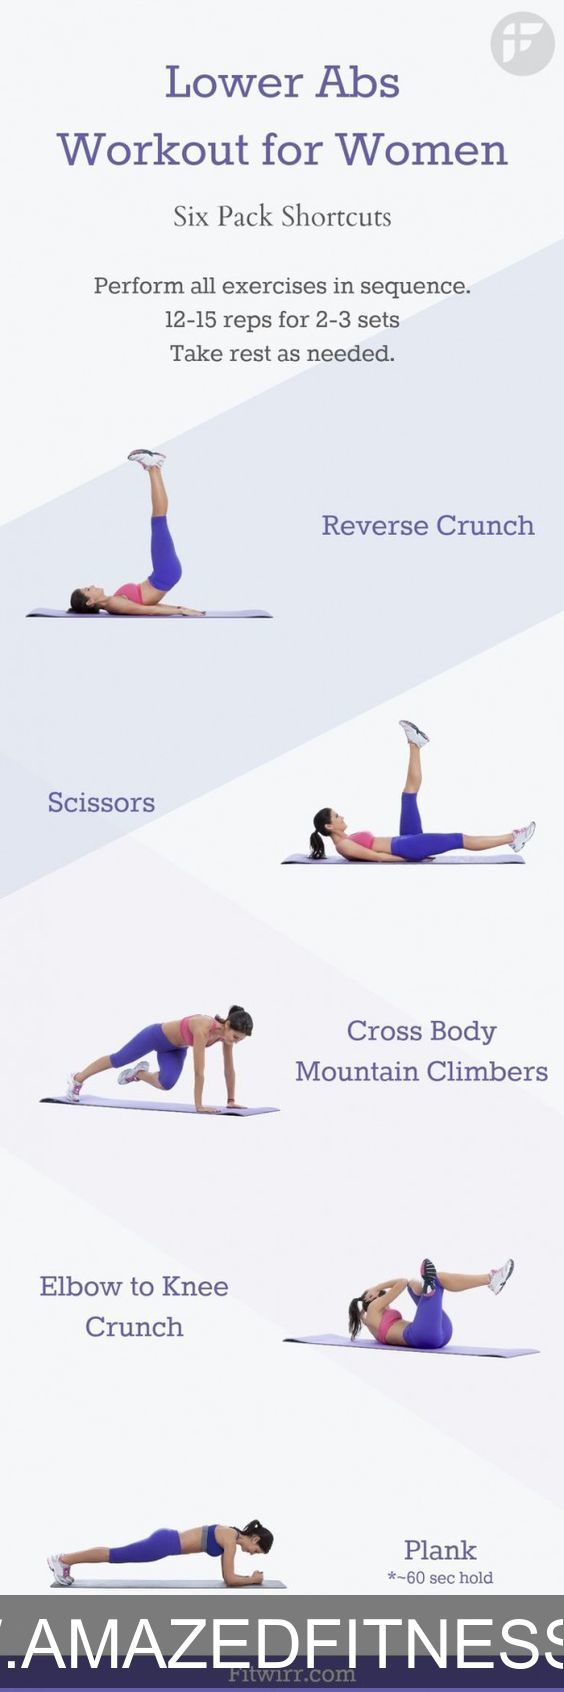 #fitmart #fitness #lowerabs #lower #abdominal #workout #6pack #sixpack #core #exercise